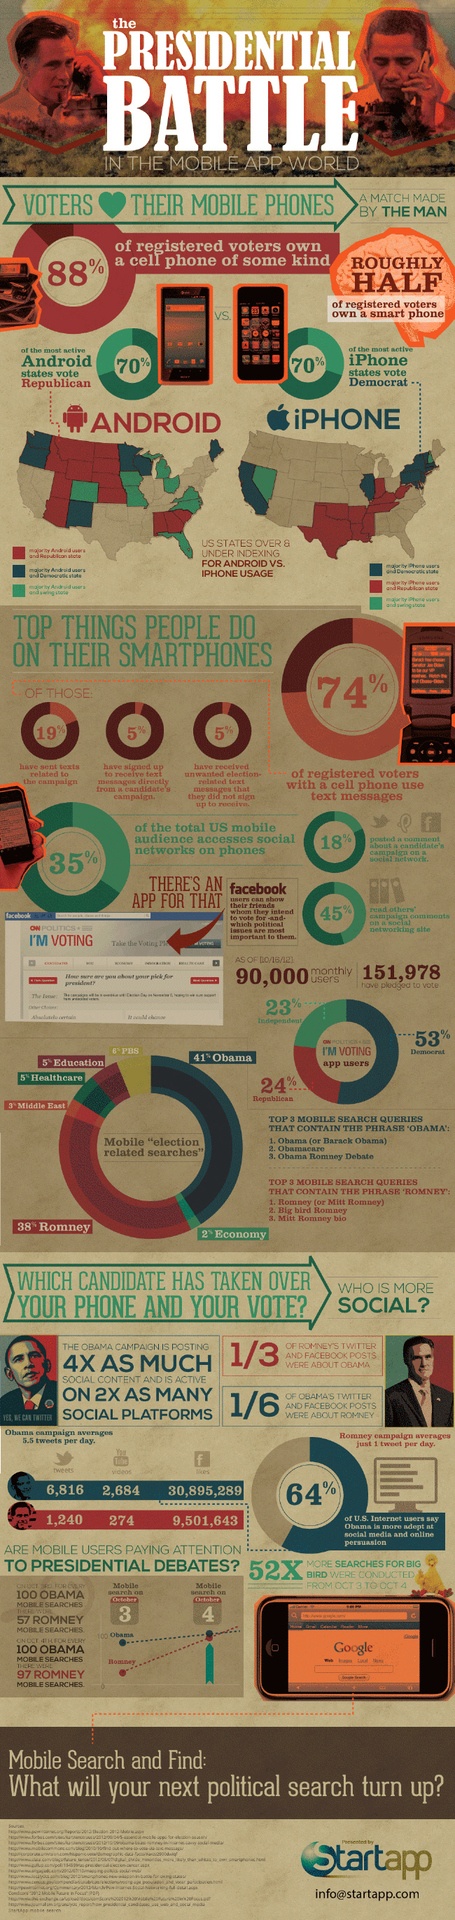 The presidential battle in the mobile app world (infographic) | data visualization US Election | Scoop.it